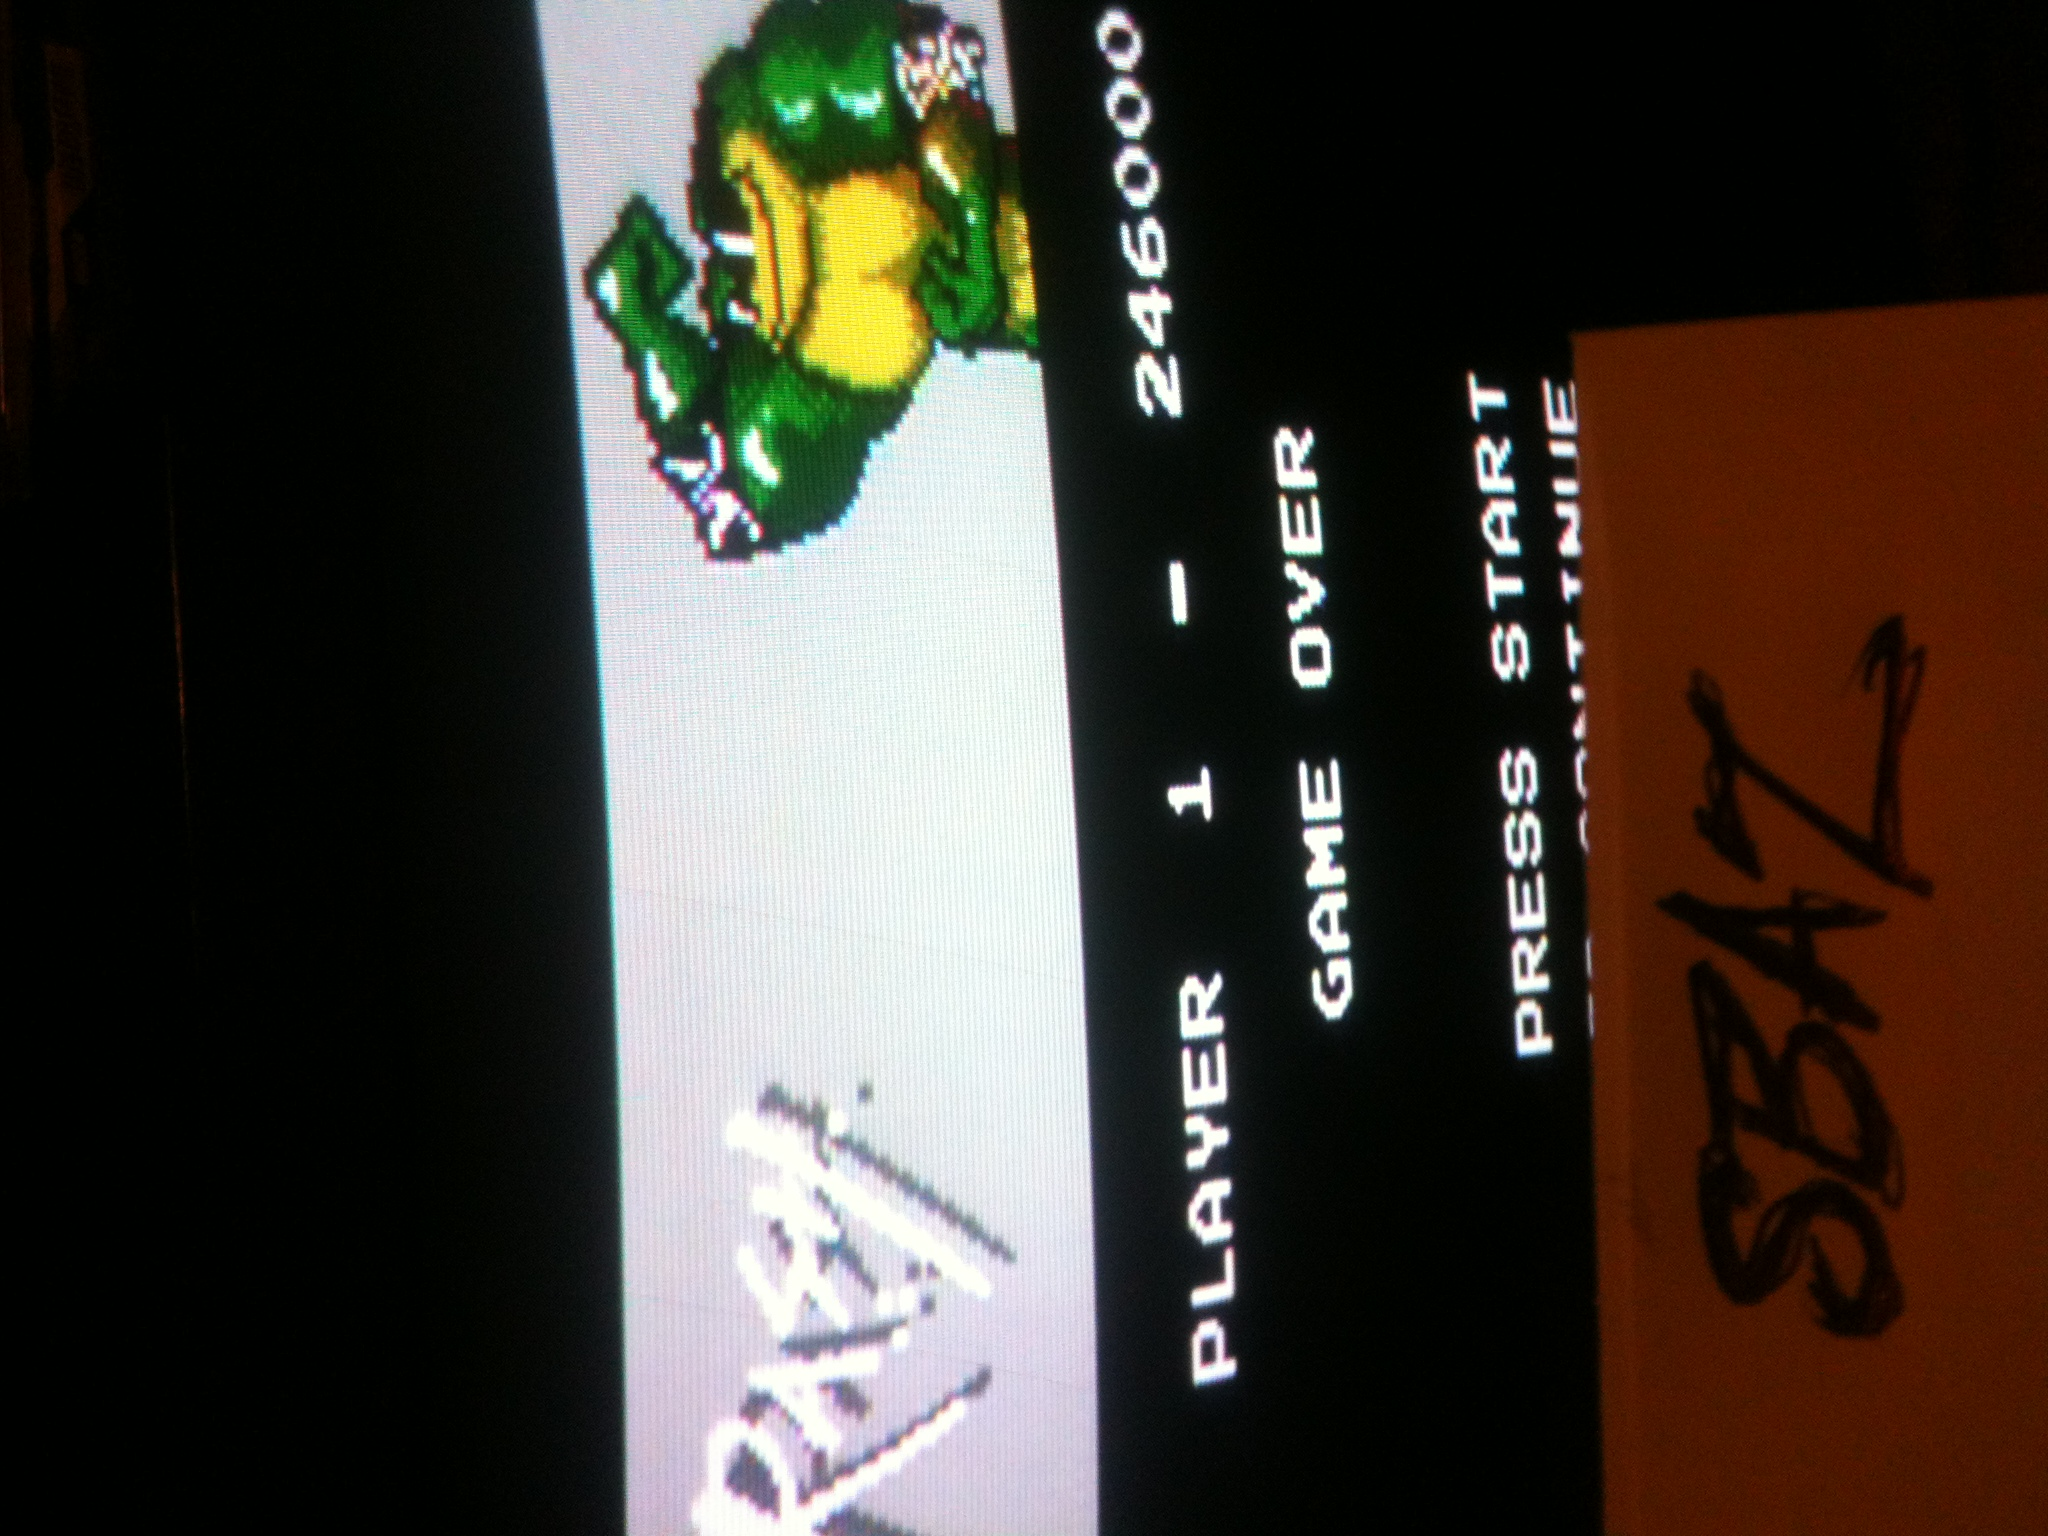 Battletoads 246,000 points